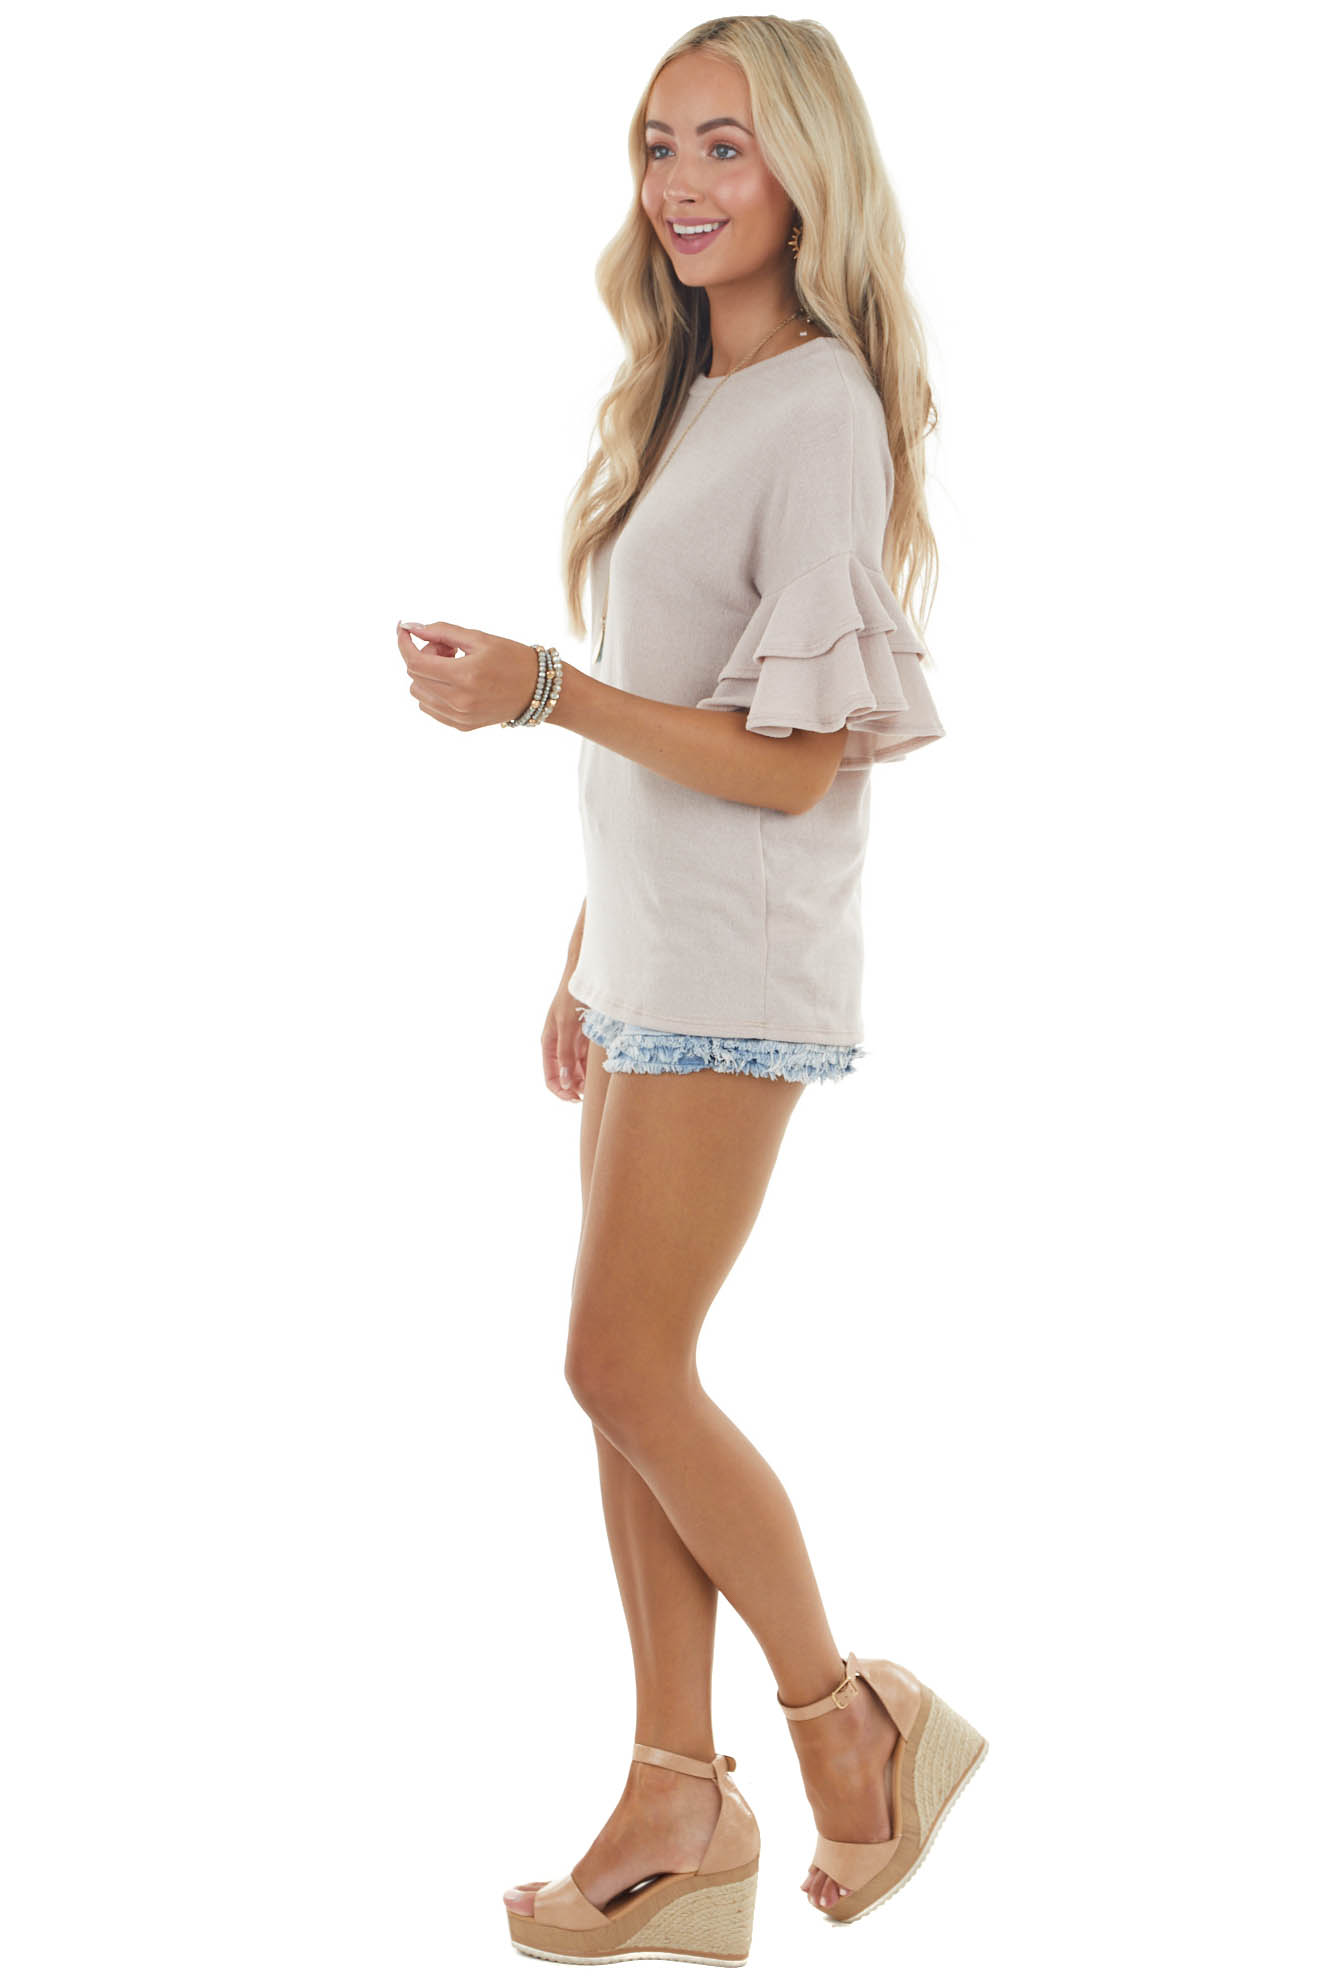 Latte Crew Neck Knit Top with Short Tiered Ruffle Sleeves